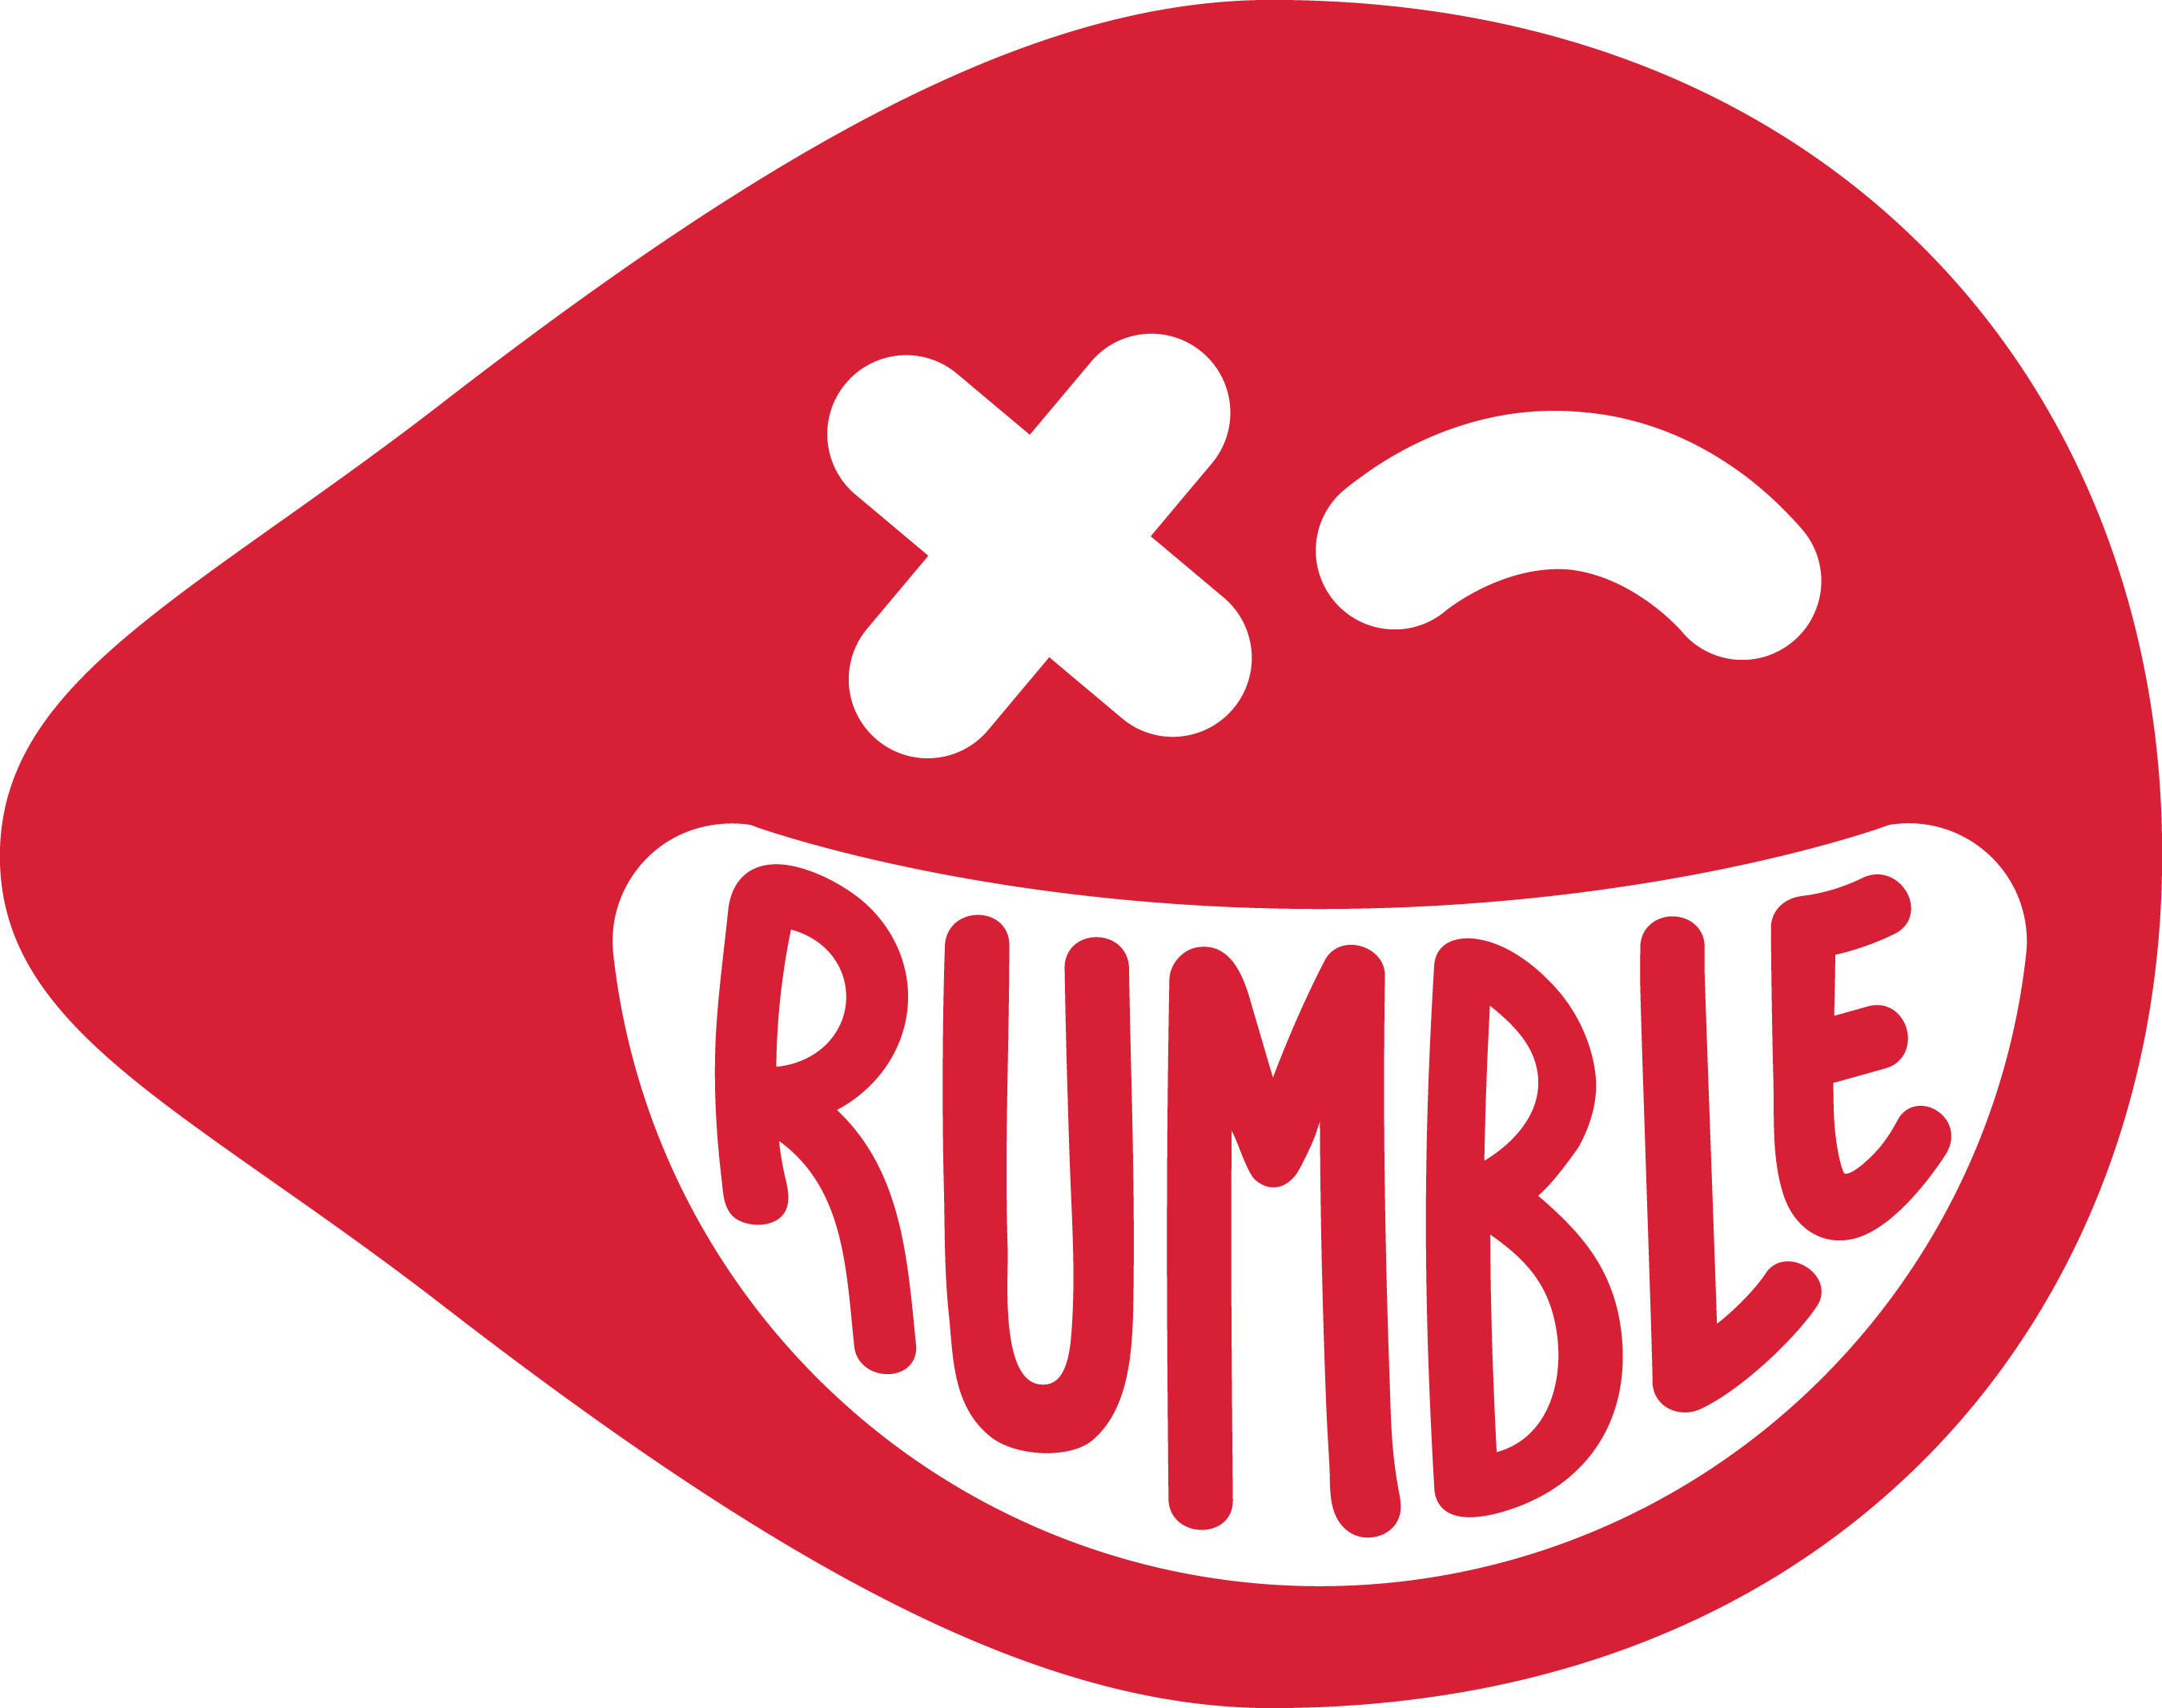 Rumble Training To Open Locations In San Francisco And NYC.